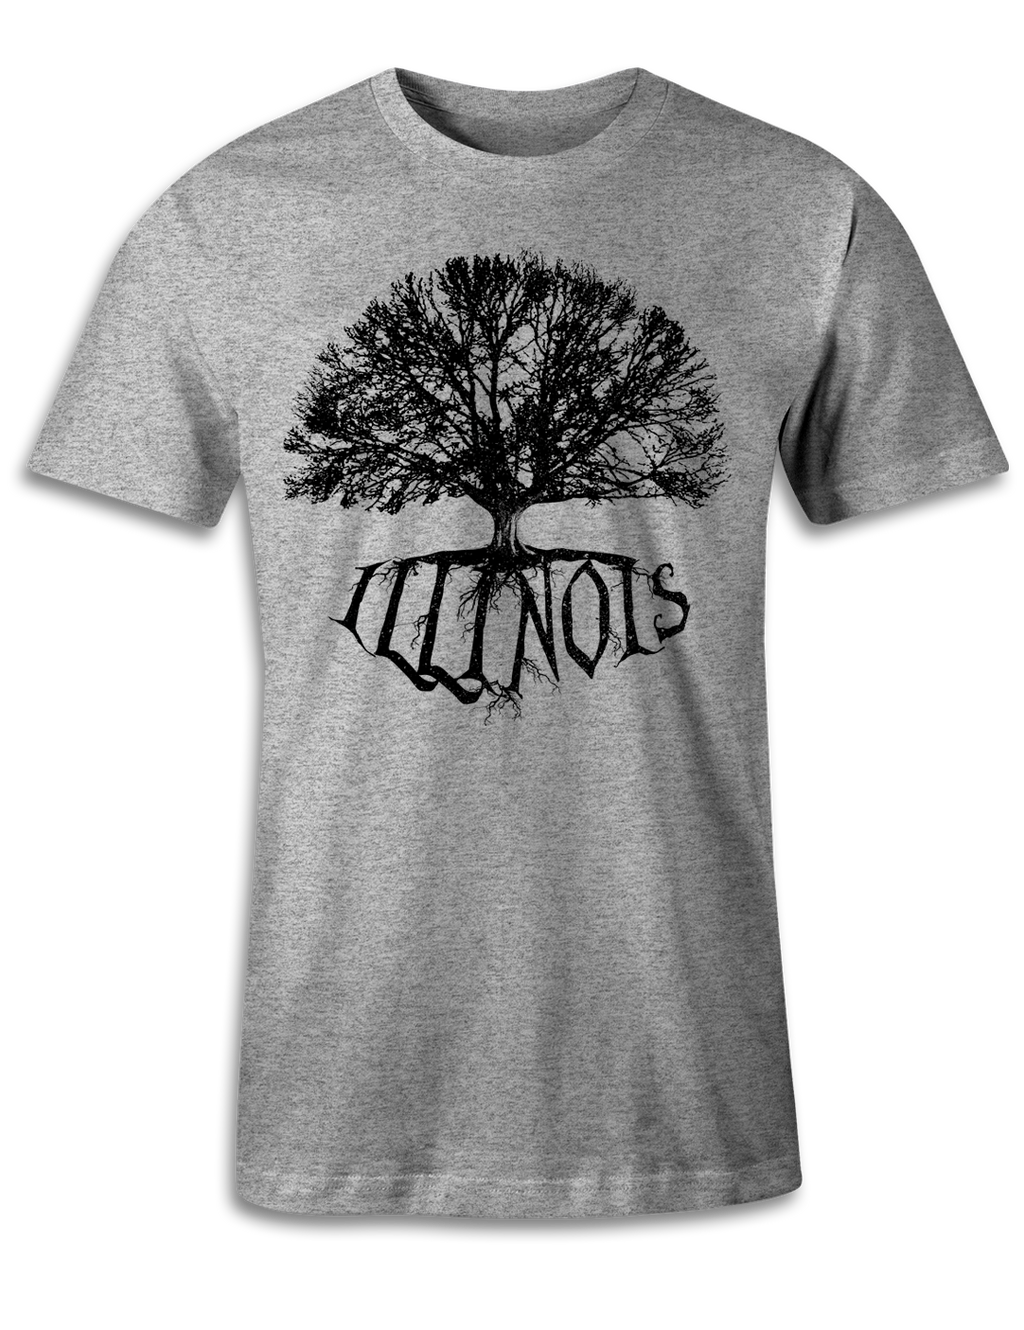 Indiana - Big Tree - Unisex Tee